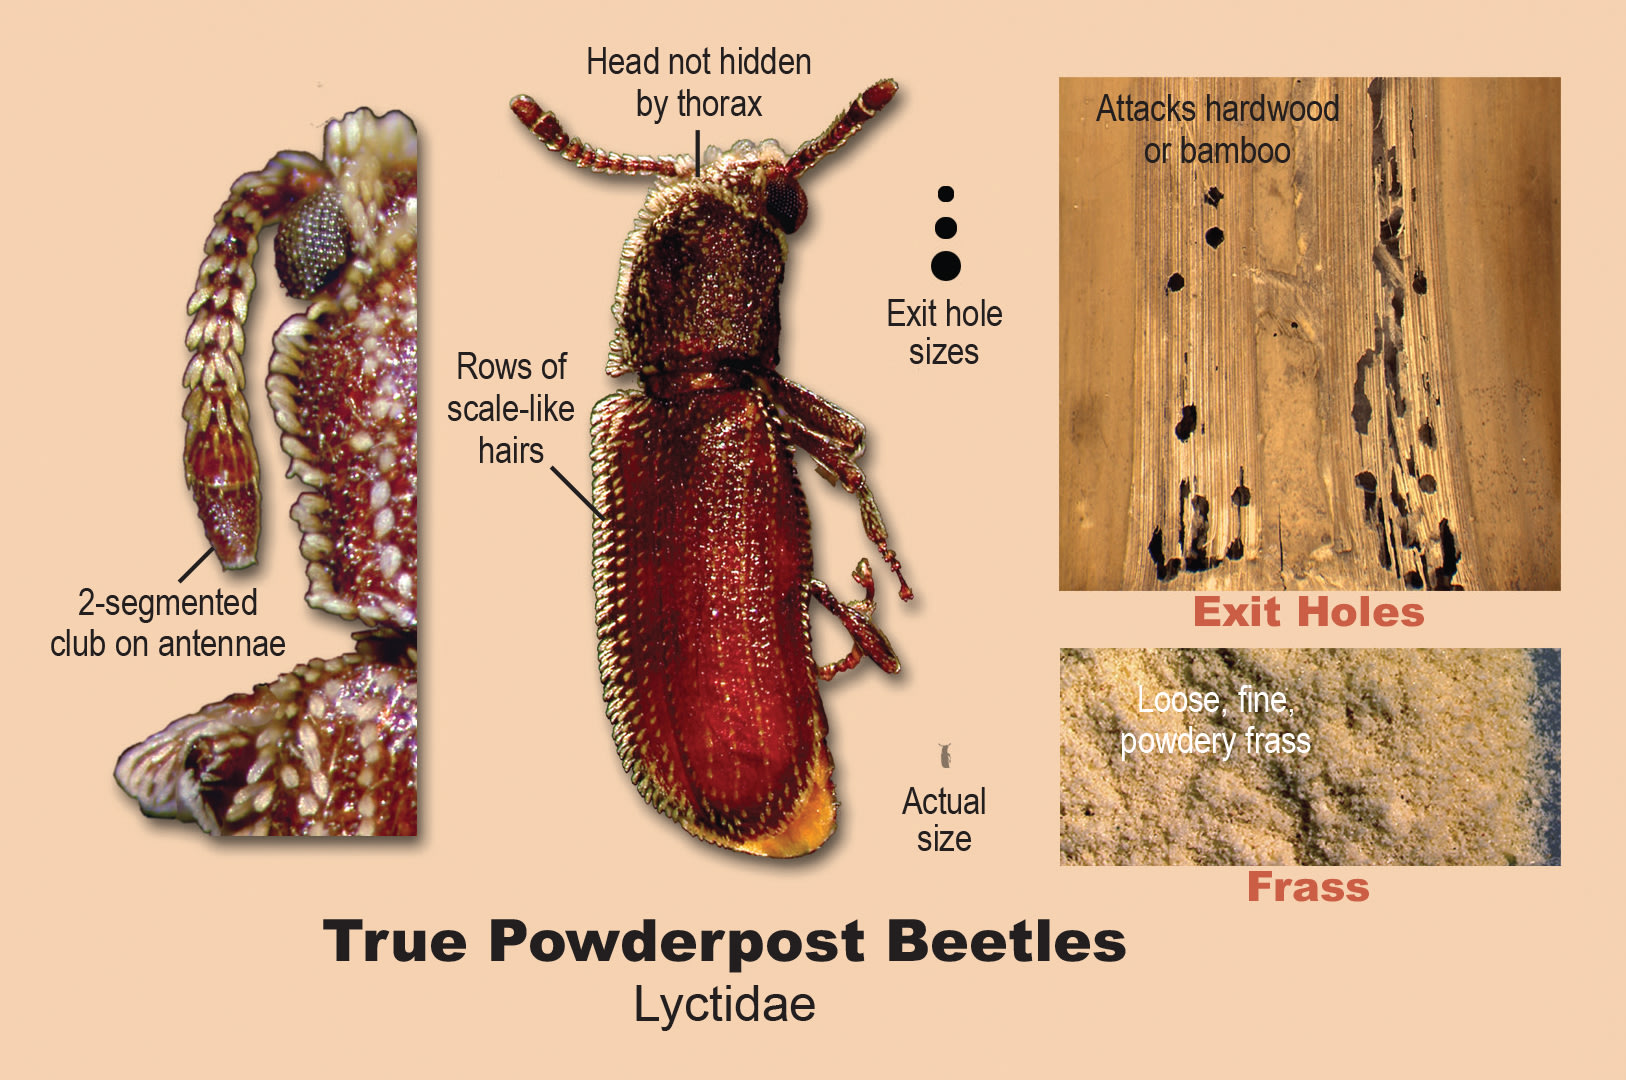 True powderpost beetles.